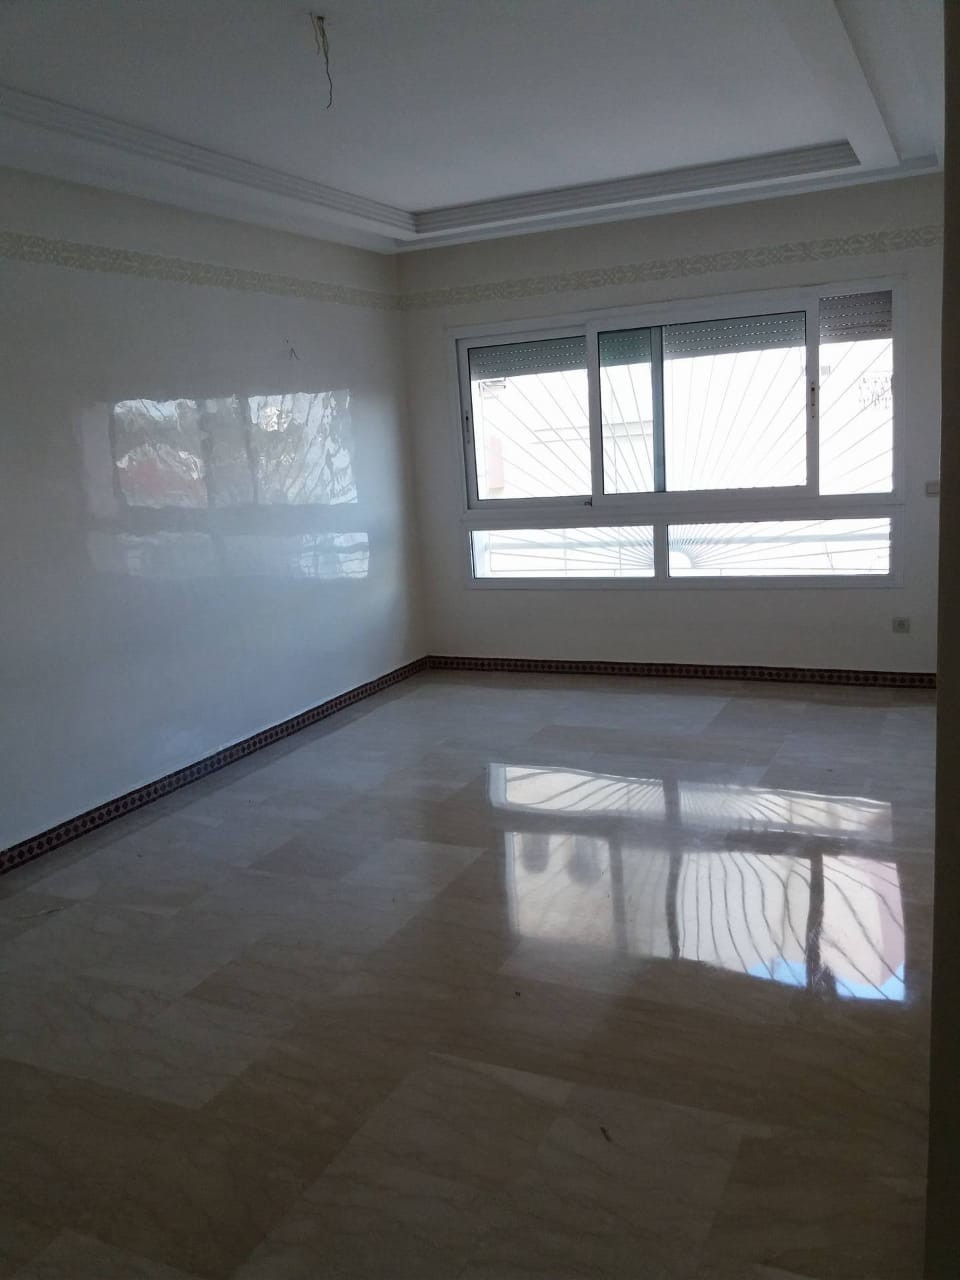 Location <strong>Appartement</strong> Casablanca Mers Sultan <strong>90 m2</strong>